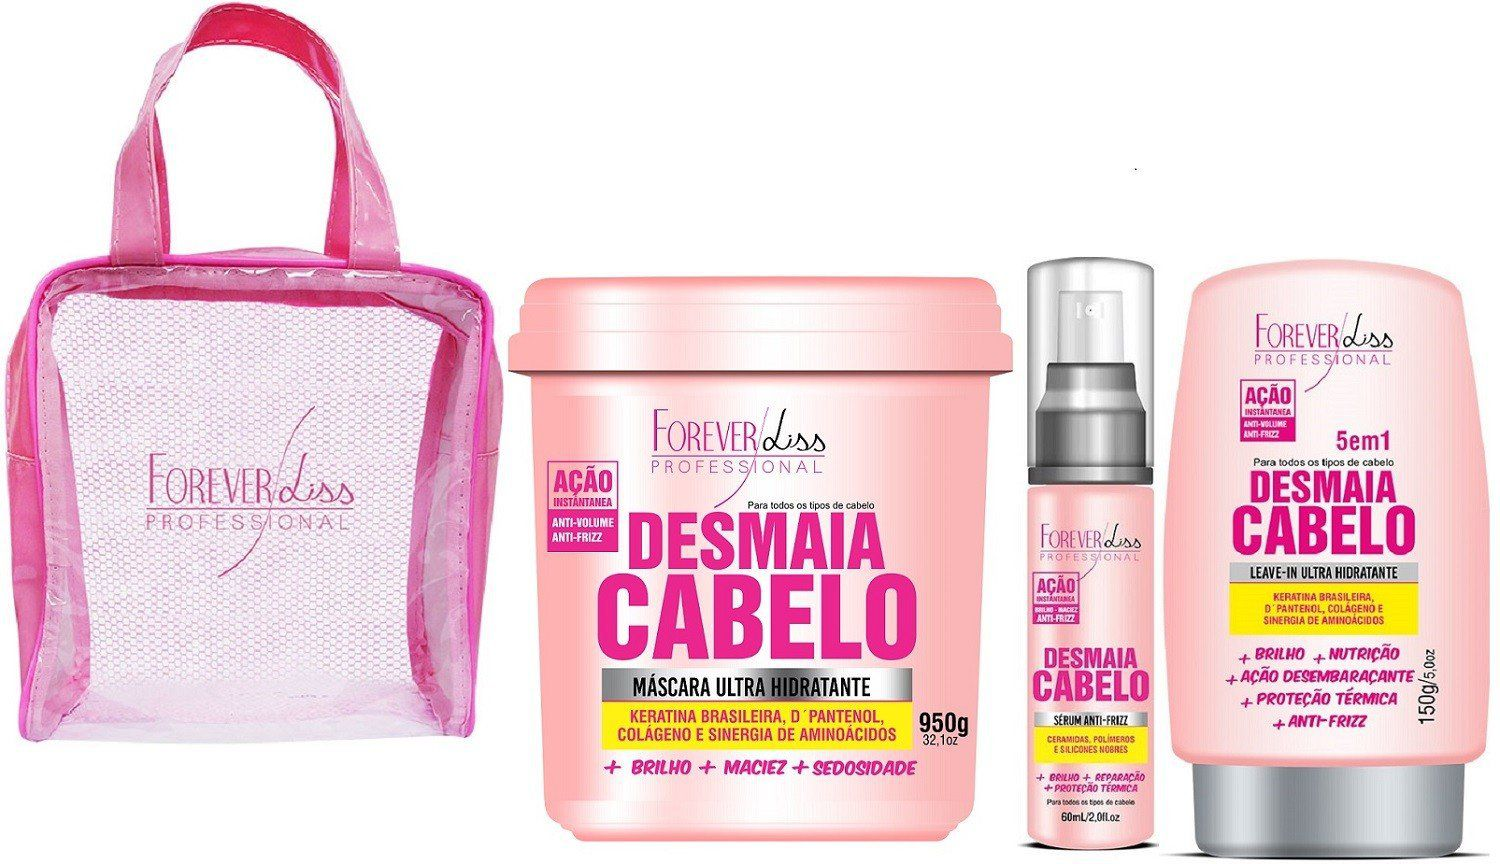 Kit Desmaia Cabelo - Forever Liss